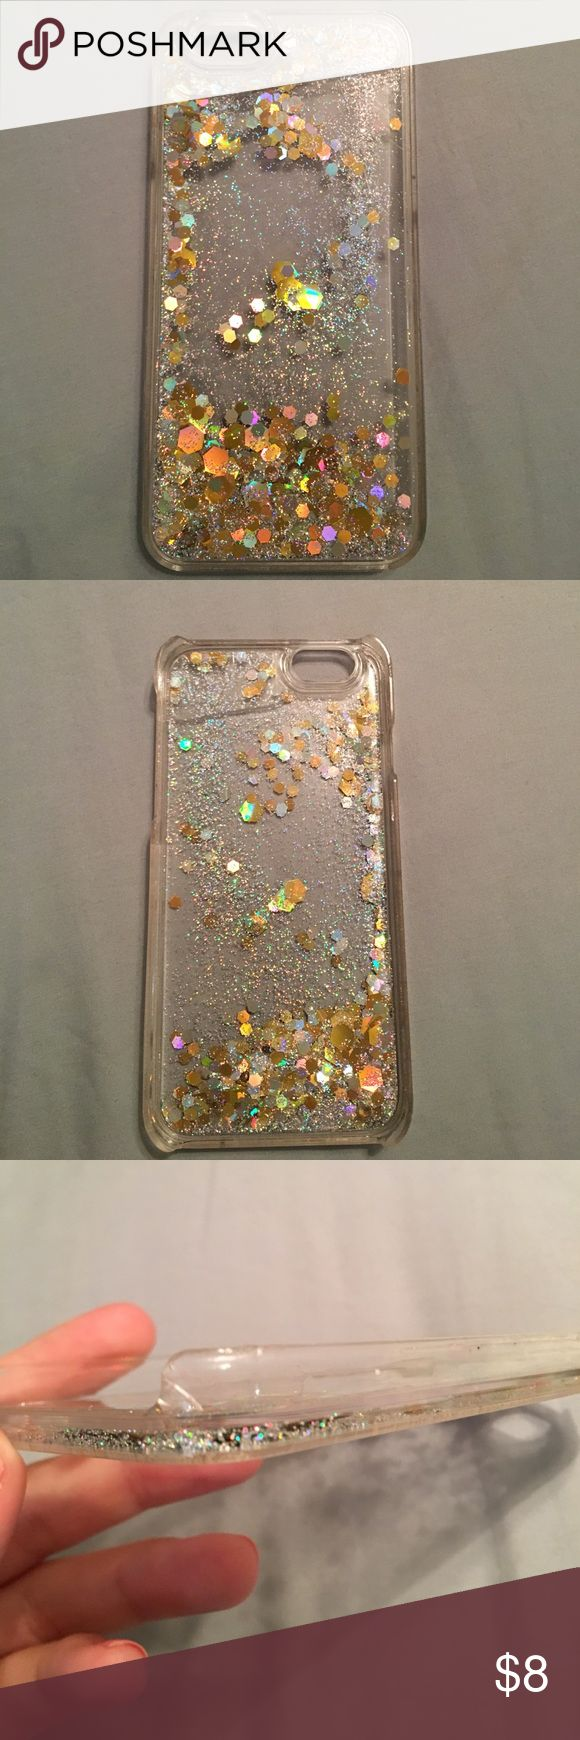 Urban Outfitters Glitter Phone Case Urban Outfitters Glitter Phone Case. iPhone 6s compatible. Gold/silver glitter. Minor scratches along outside edge. Urban Outfitters Accessories Phone Cases